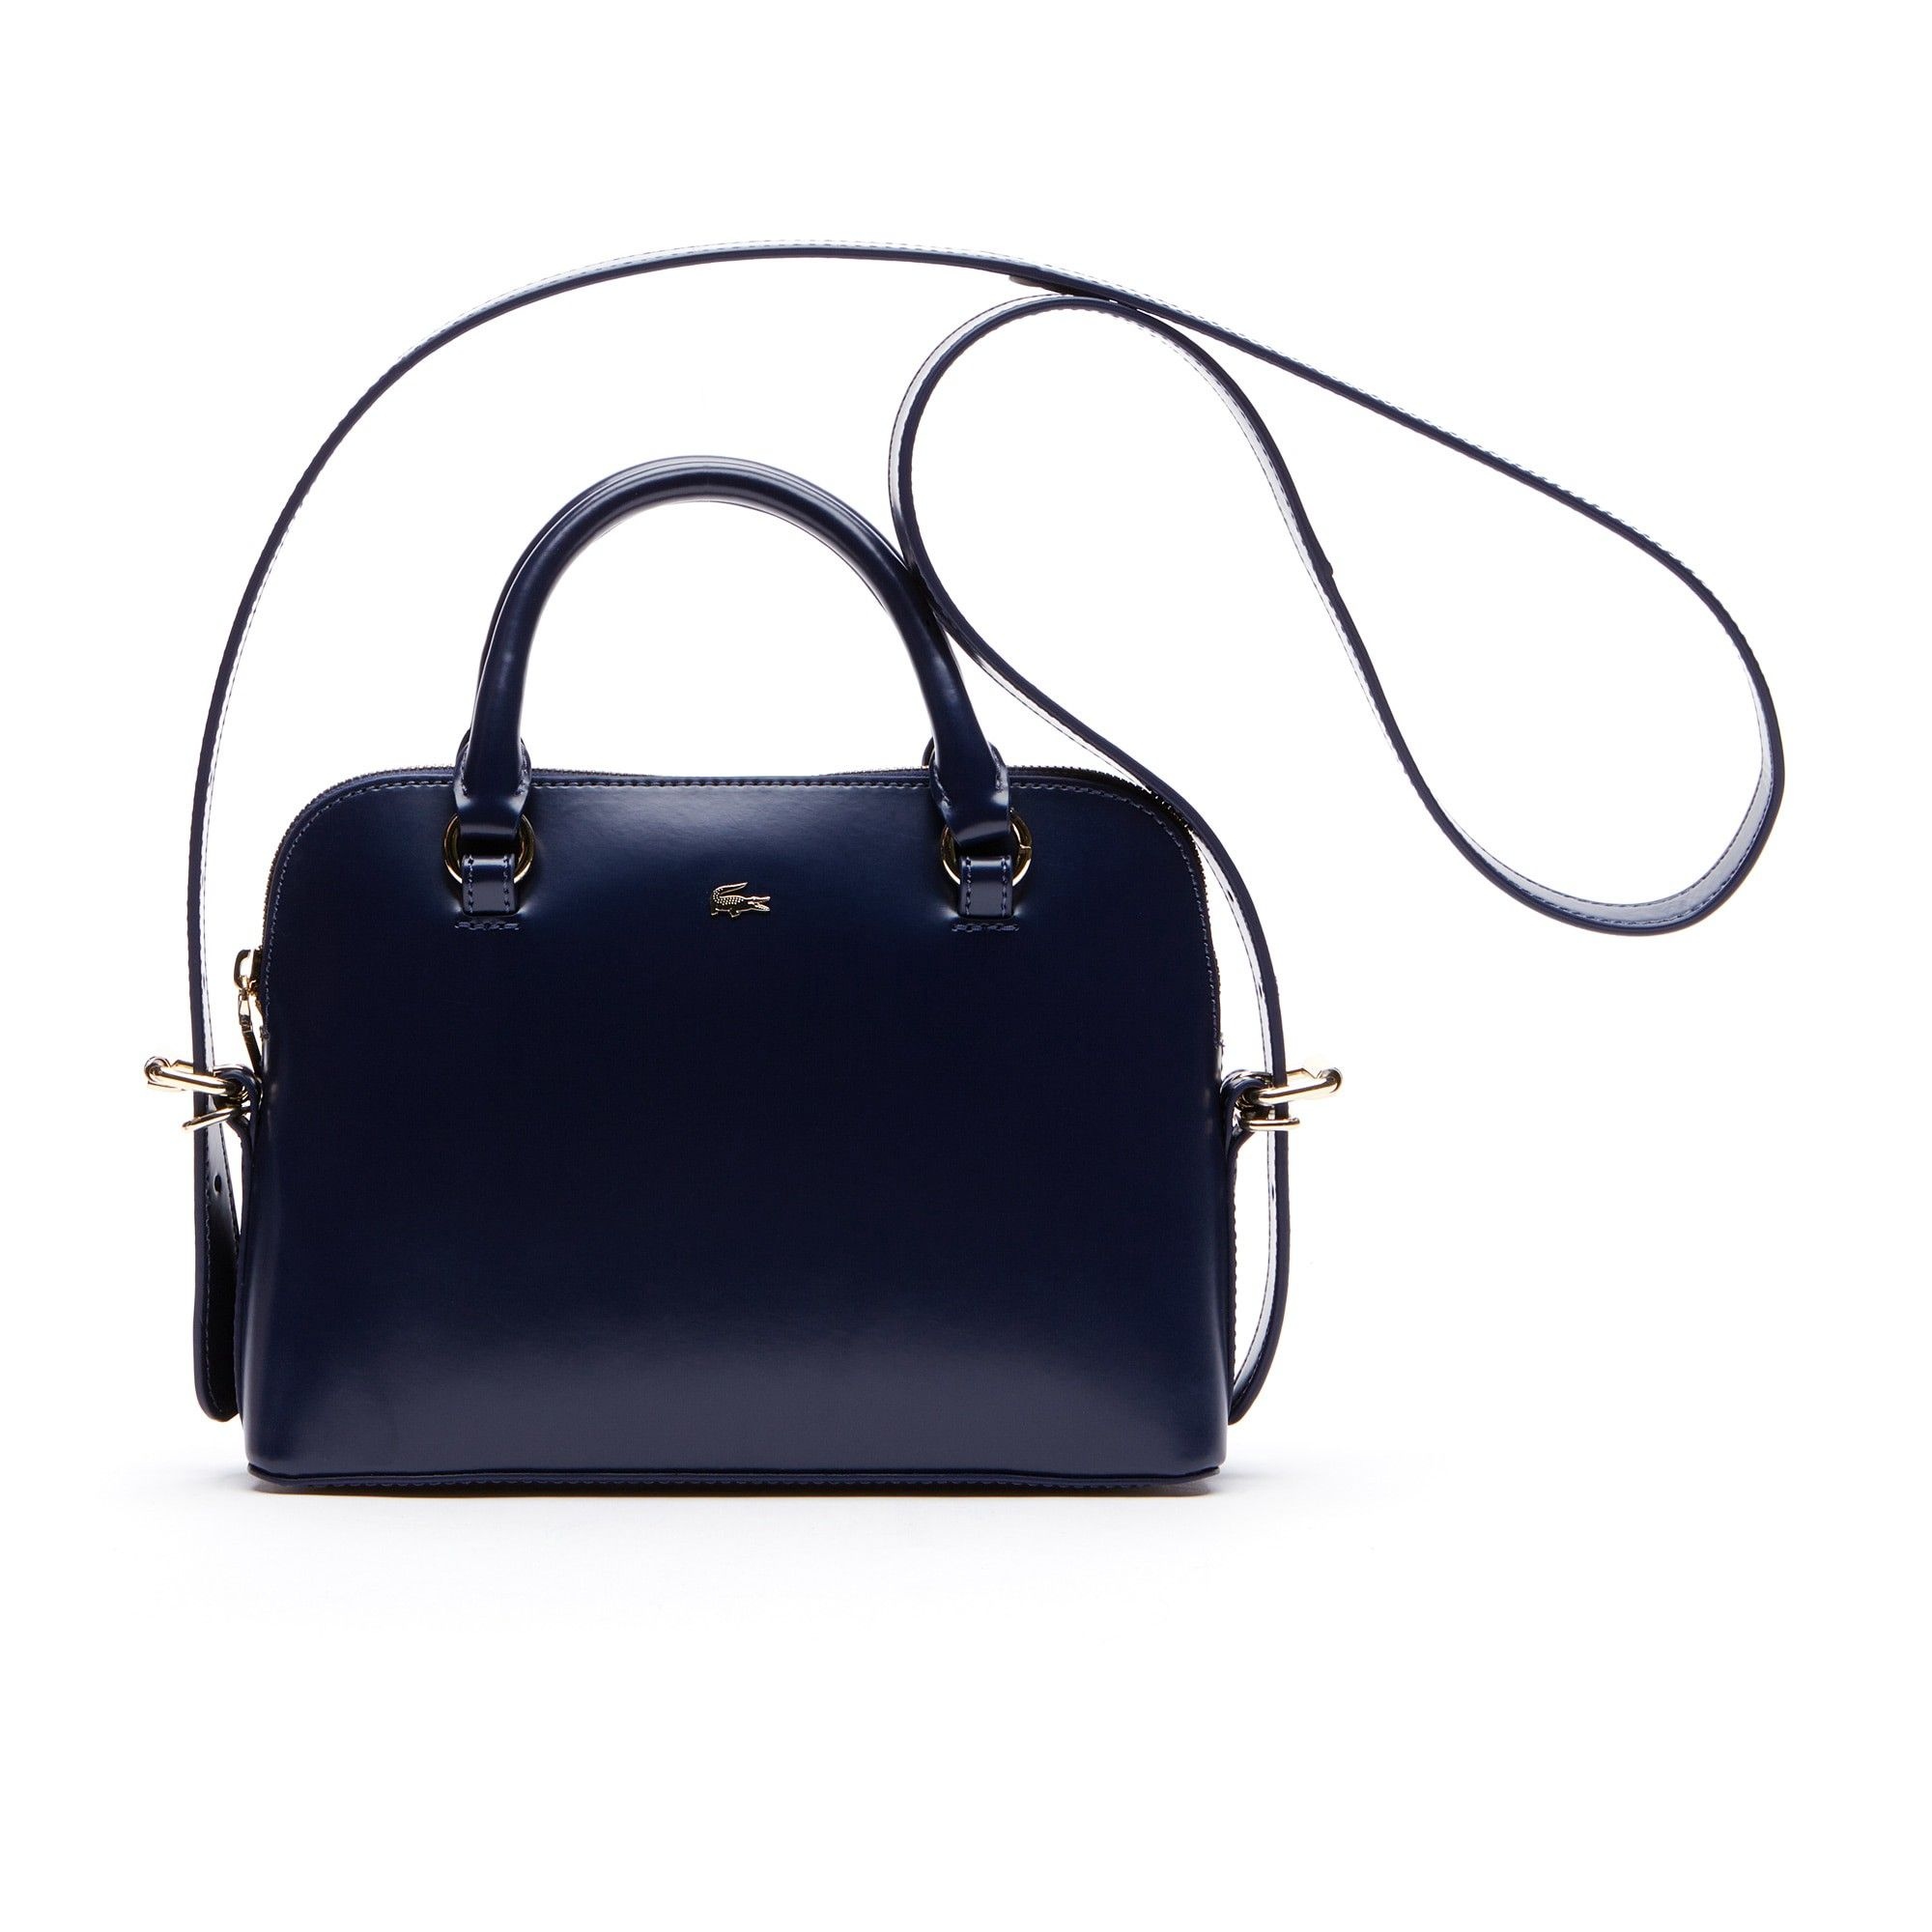 a3b2376745 LACOSTE Women's Mini Golf Glazed Leather Bugatti Bag - BLUE DEPTHSBLUE  DEPTHS. #lacoste #bags #shoulder bags #leather #